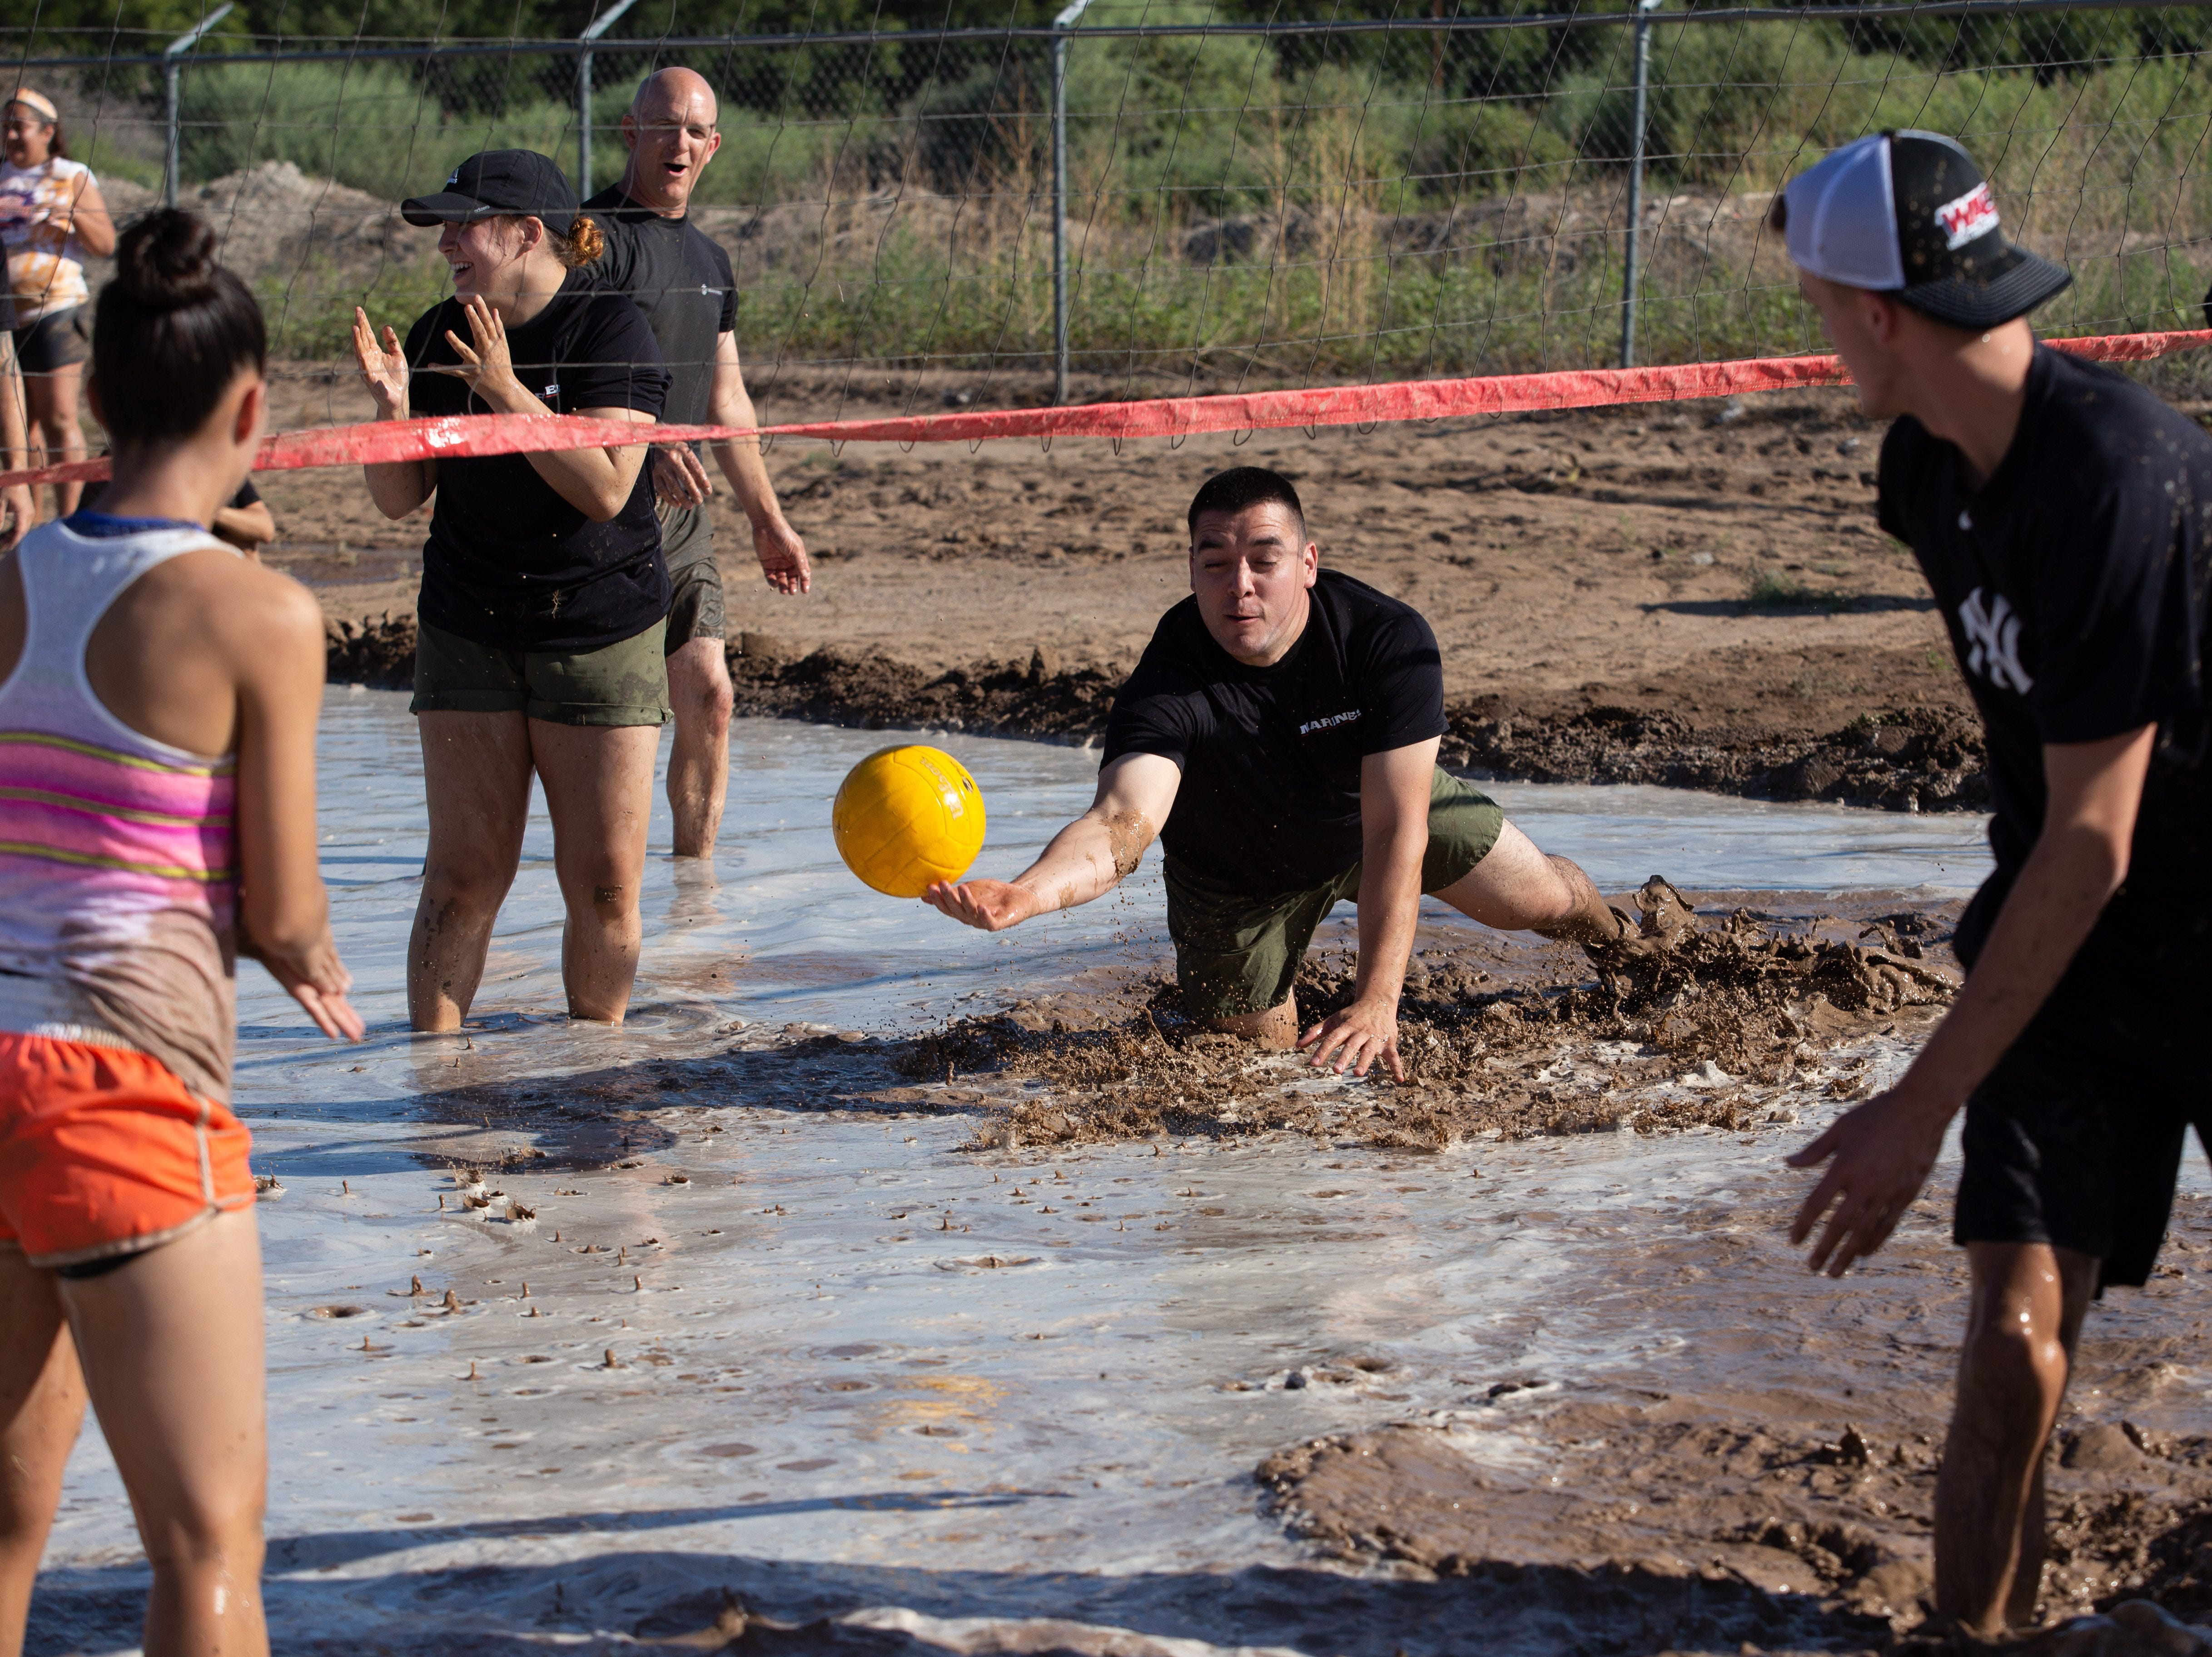 Marine Ruben Madriles takes a dive for the ball during the 9th Annual Mudd Volleyball tournament on September 8, 2018.